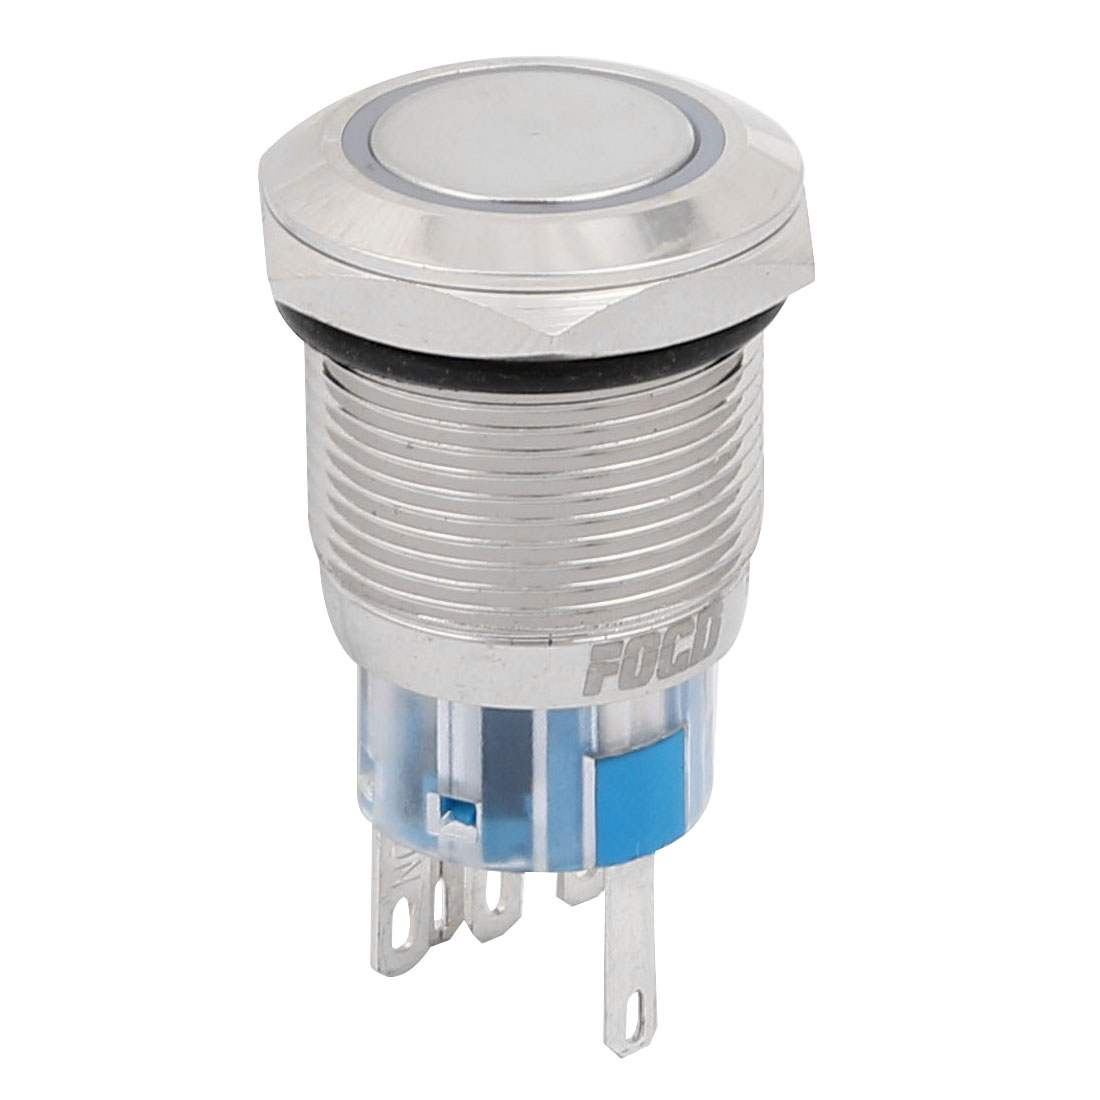 DC24V 19mm Thread Dia 5 Terminal Blue LED Momentary Stainless Push Button Switch